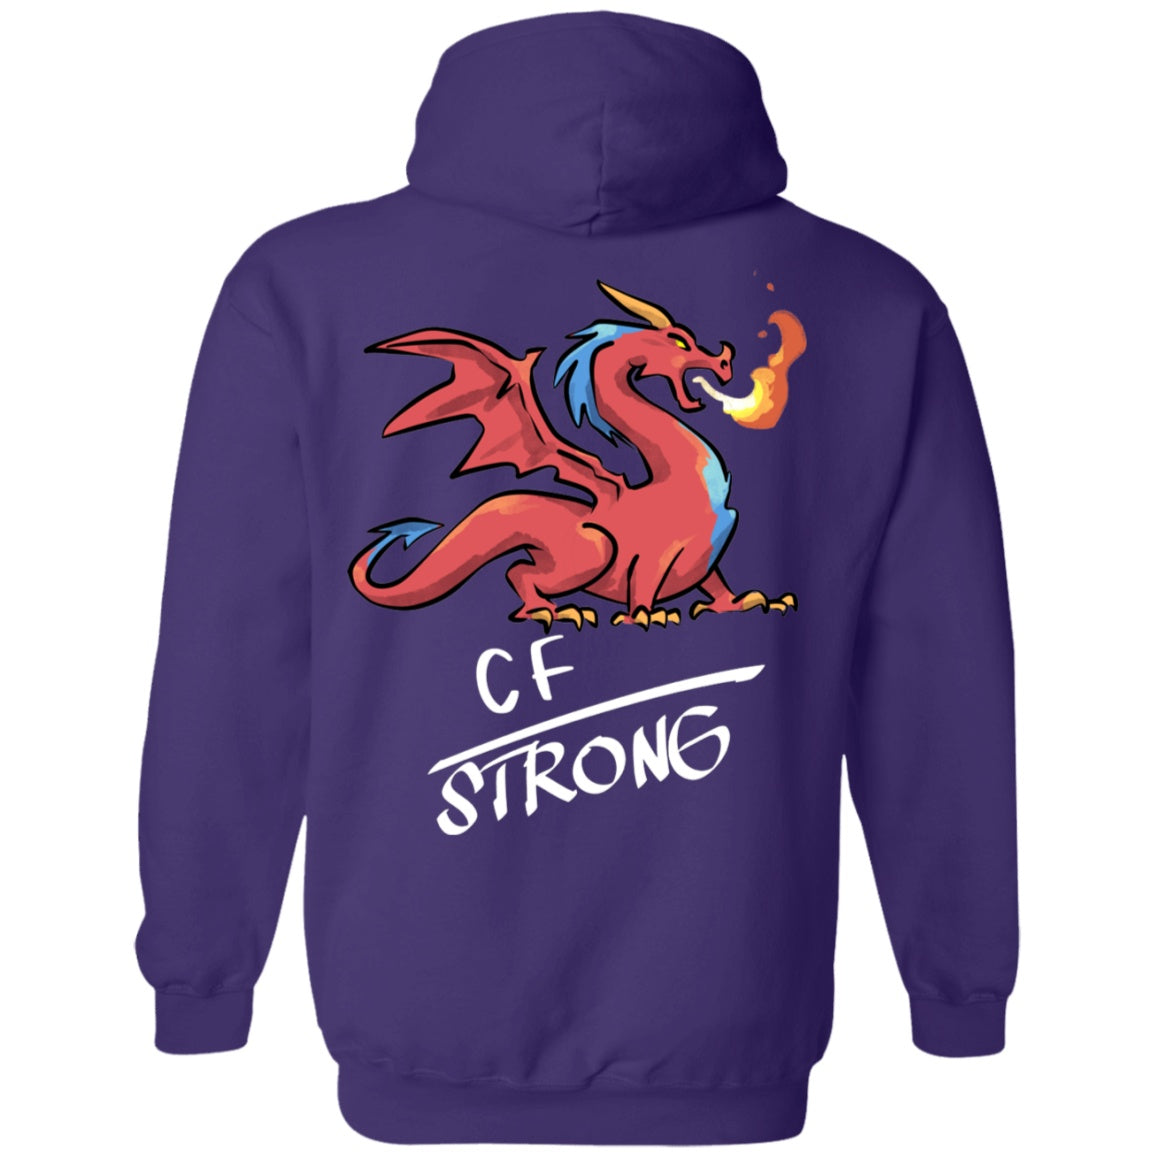 CF Strong Dragon Pullover Hoodie 8 oz. - The Unchargeables